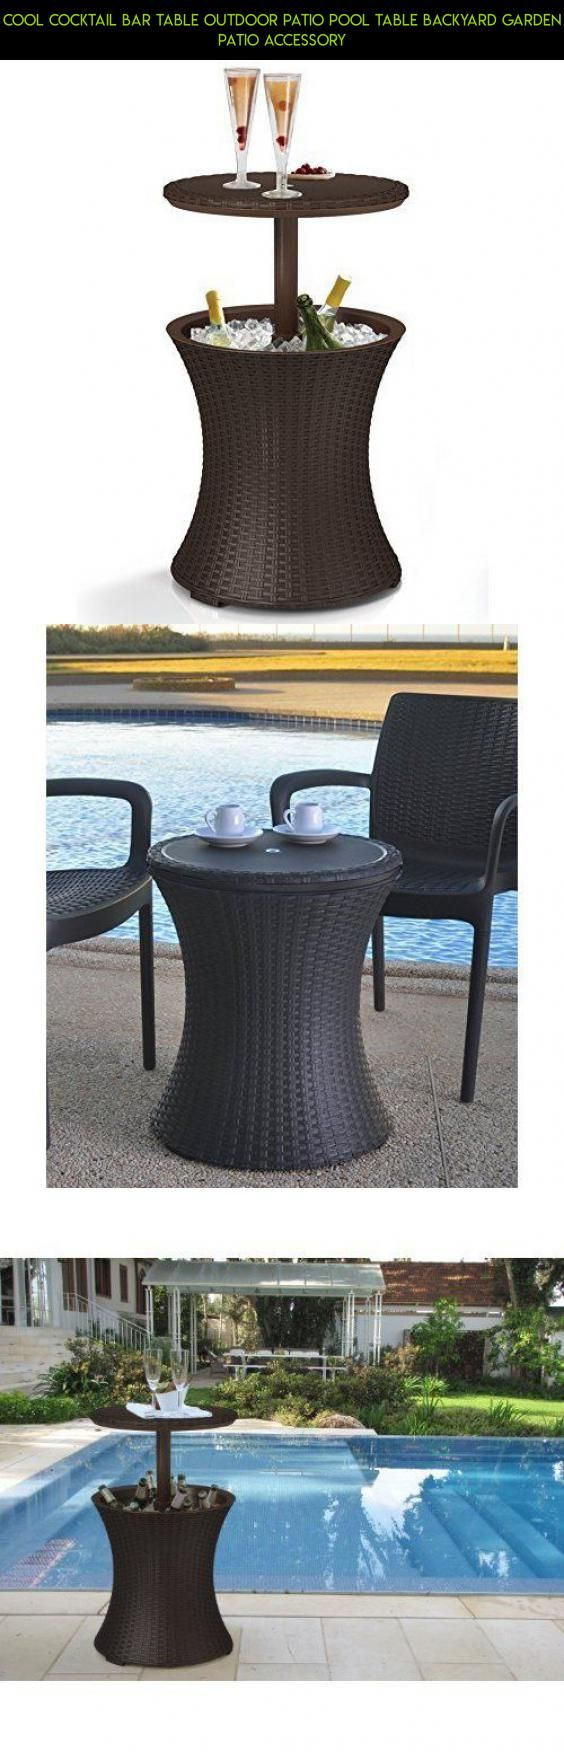 Pool table legs accessories for sale - Cool Cocktail Bar Table Outdoor Patio Pool Table Backyard Garden Patio Accessory Drone Camera